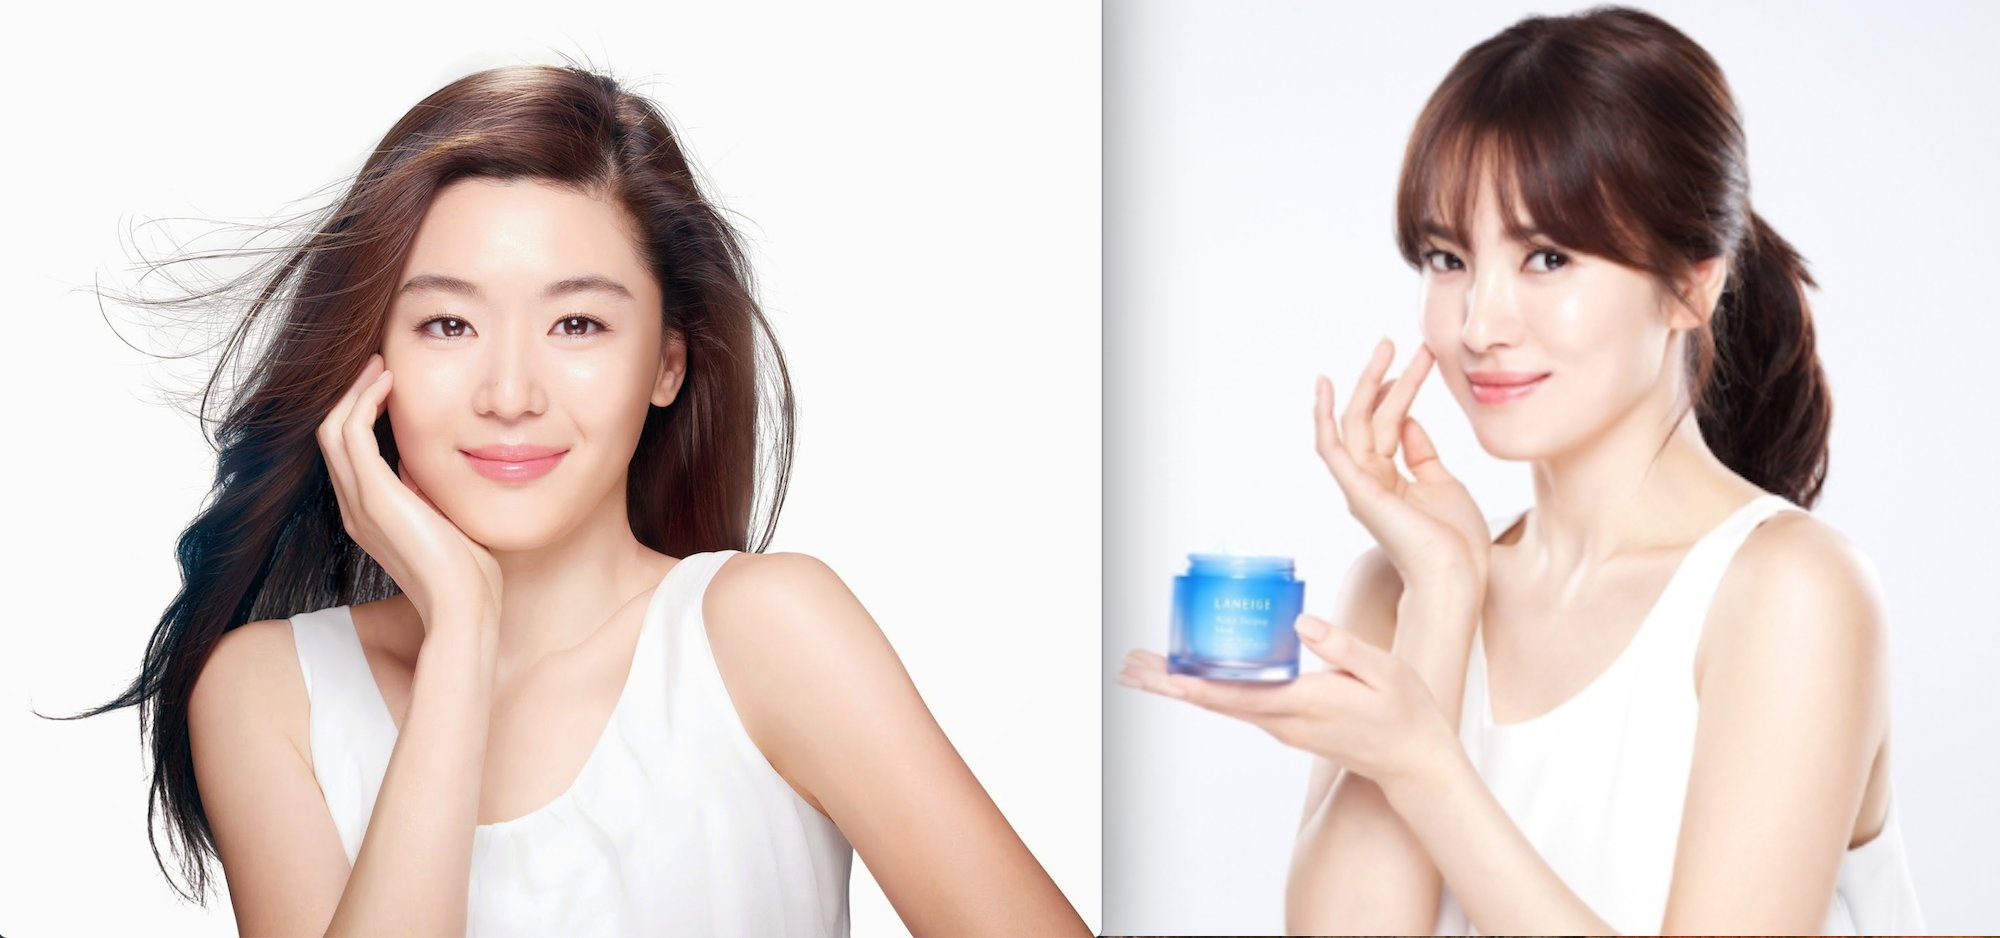 screen shot 2018 08 13 at 2 01 25 pm.png?resize=412,232 - 10 Rules of Skin Care That Help Korean Women Look So Young